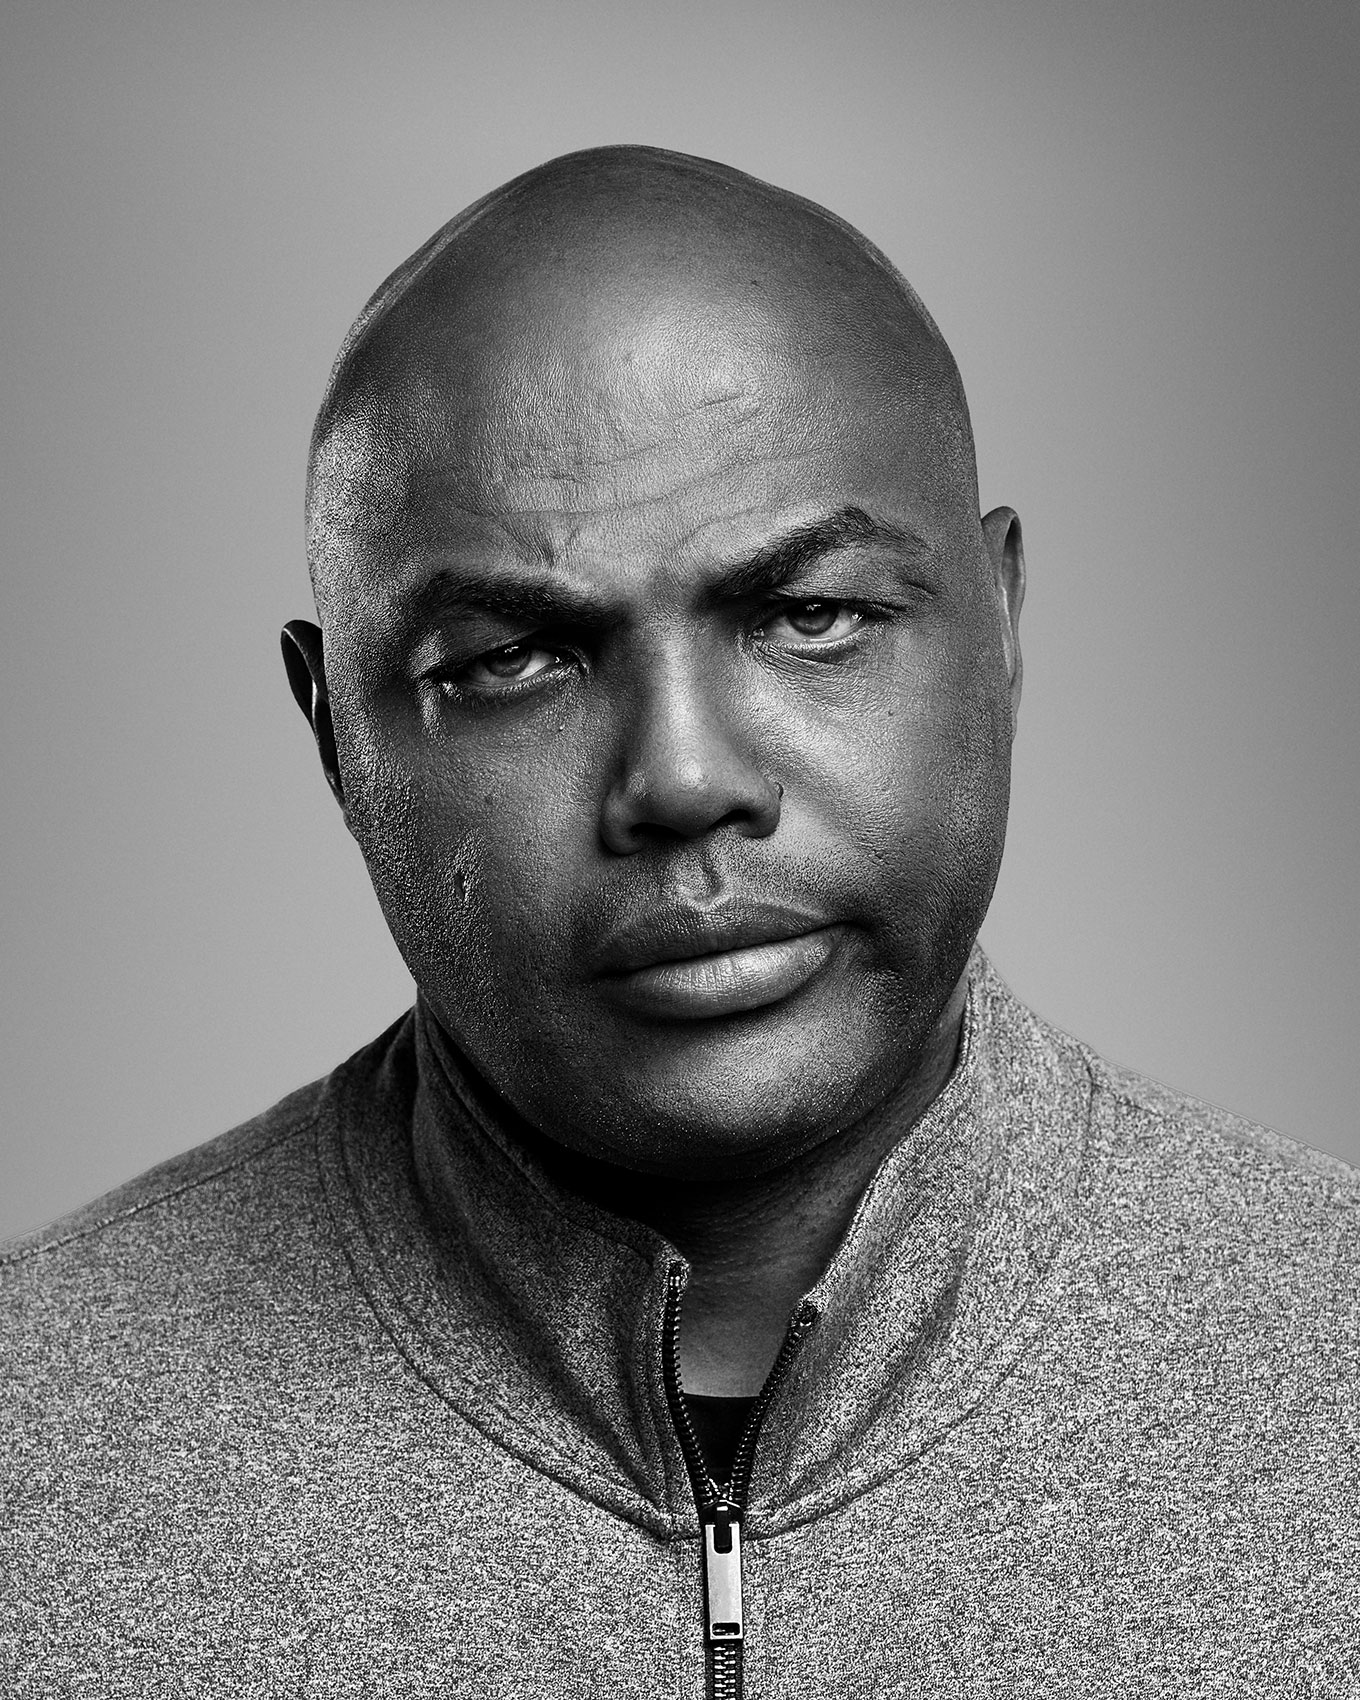 CharlesBarkley_Test_00055_01d-bw-